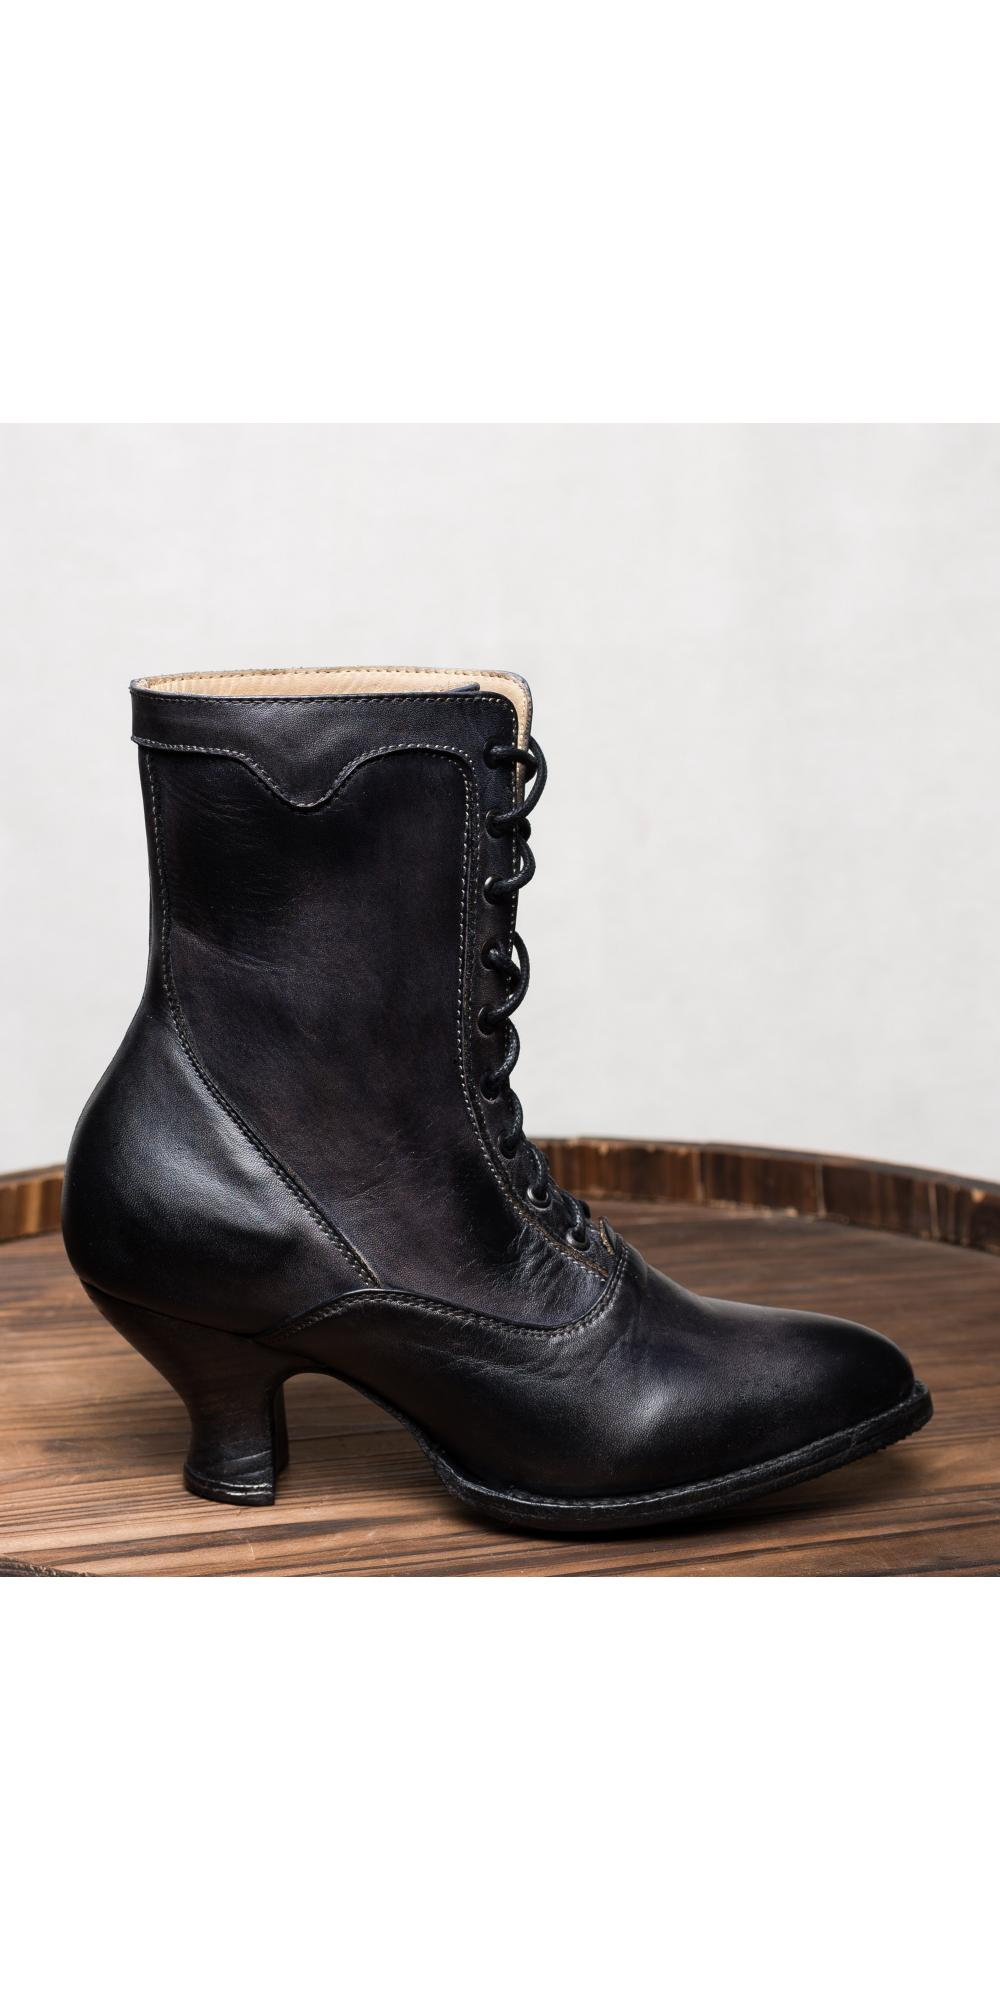 Victorian Style Ankle Boots In Black Rustic